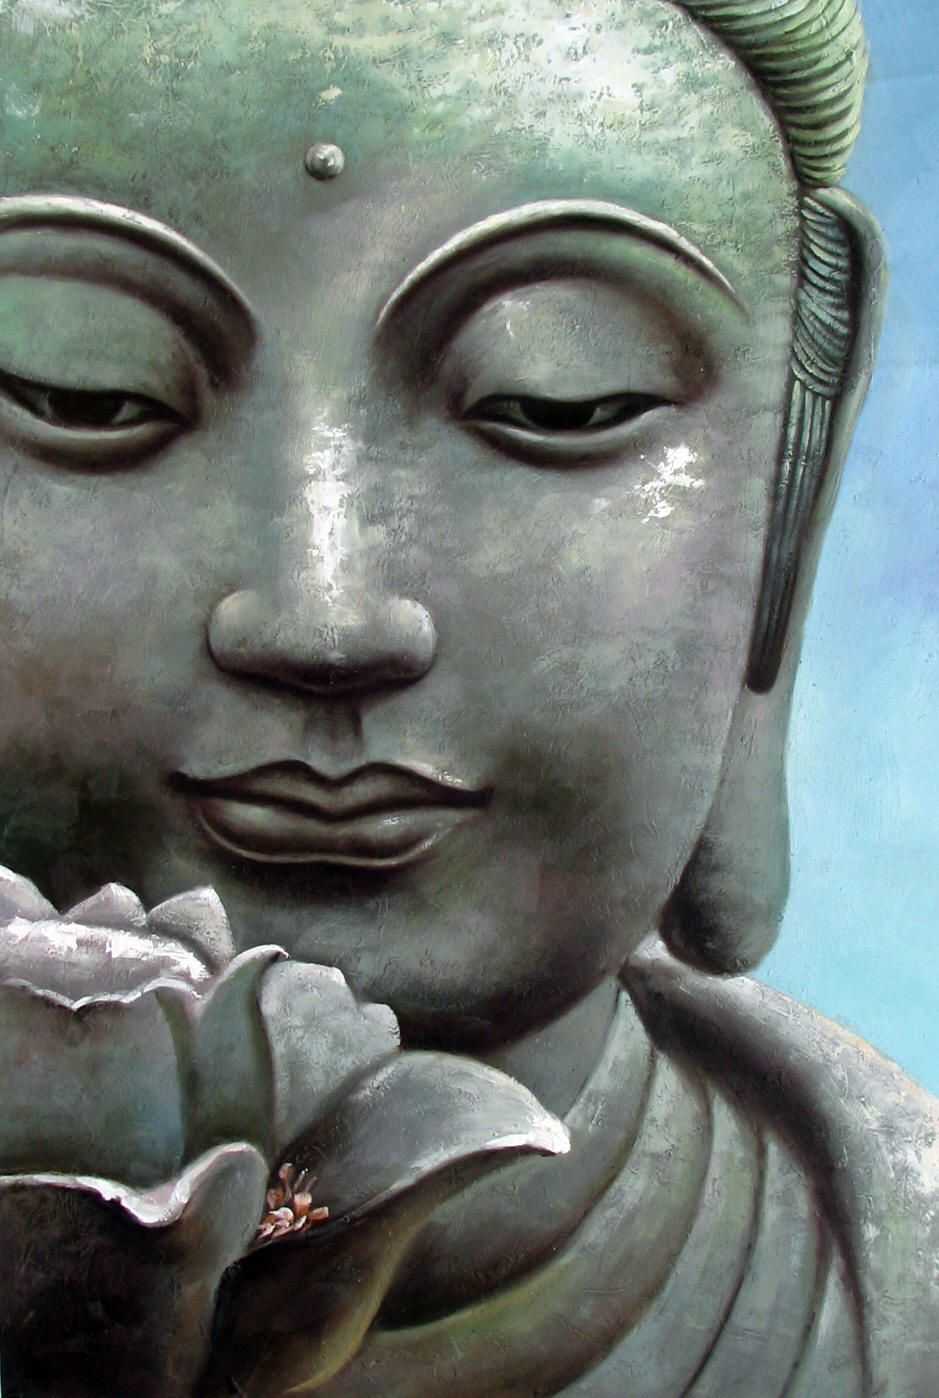 The Buddha Was A Wellspring Of Wisdom And Clarity He Gave So Many